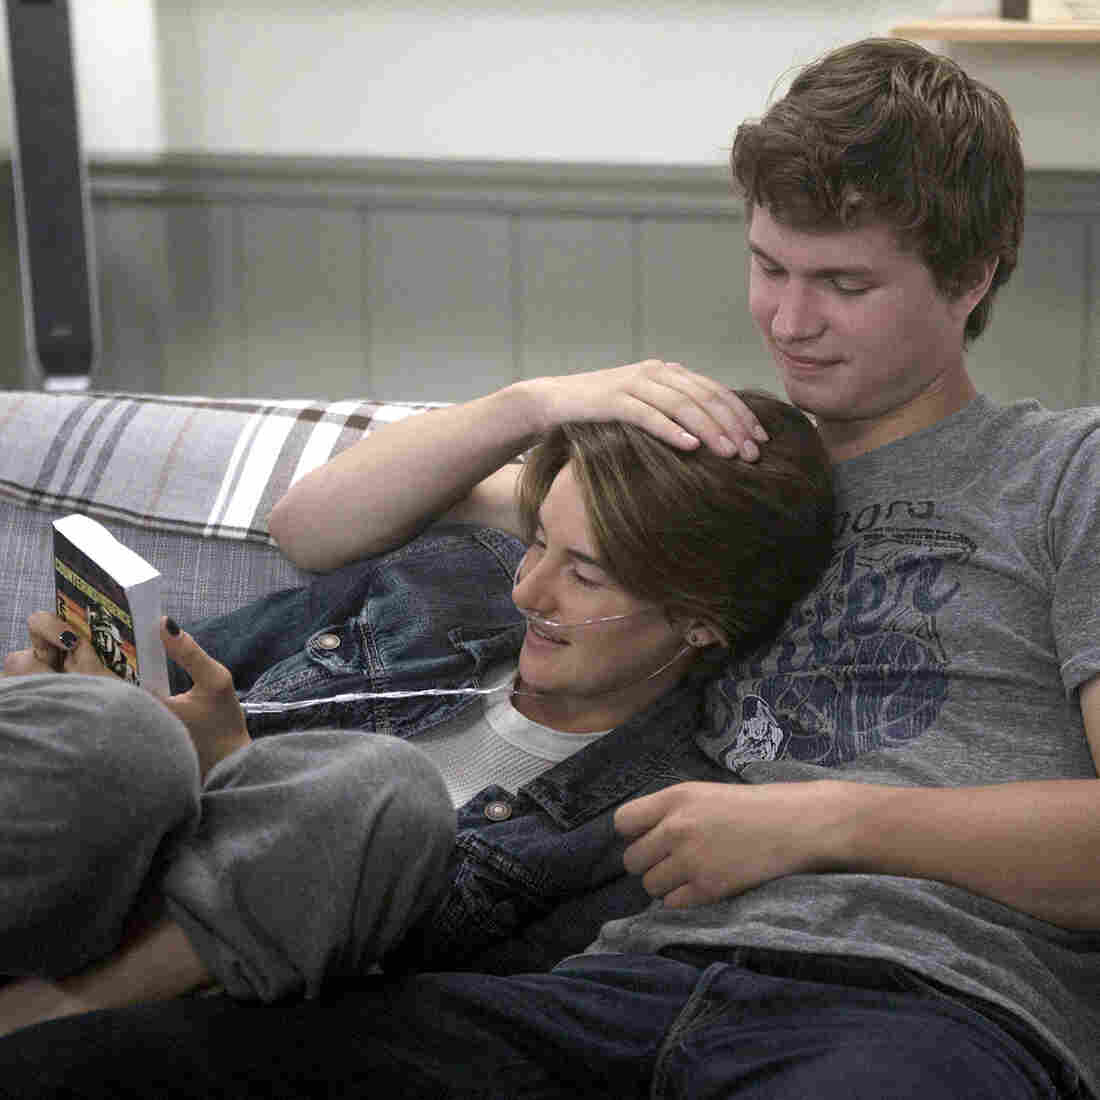 In the movie The Fault in Our Stars, having terminal cancer doesn't look so bad for Hazel, played by Shailene Woodley, and Gus, played by Ansel Elgort.